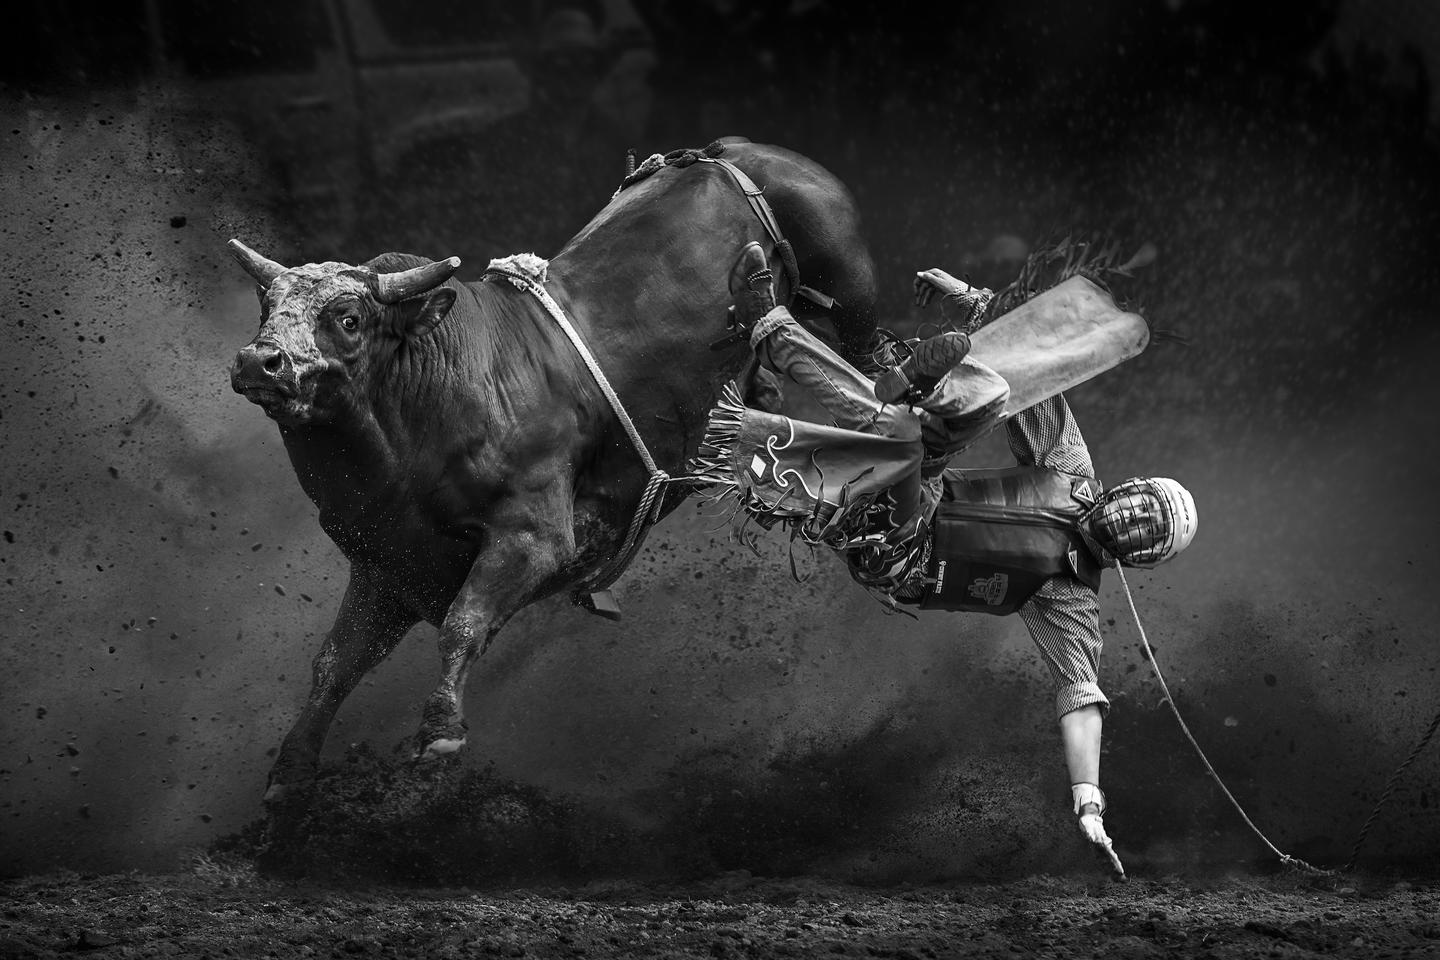 Honorable Mention - Break Away. A man falling off a bull in a rodeo event held in Taralga Australia